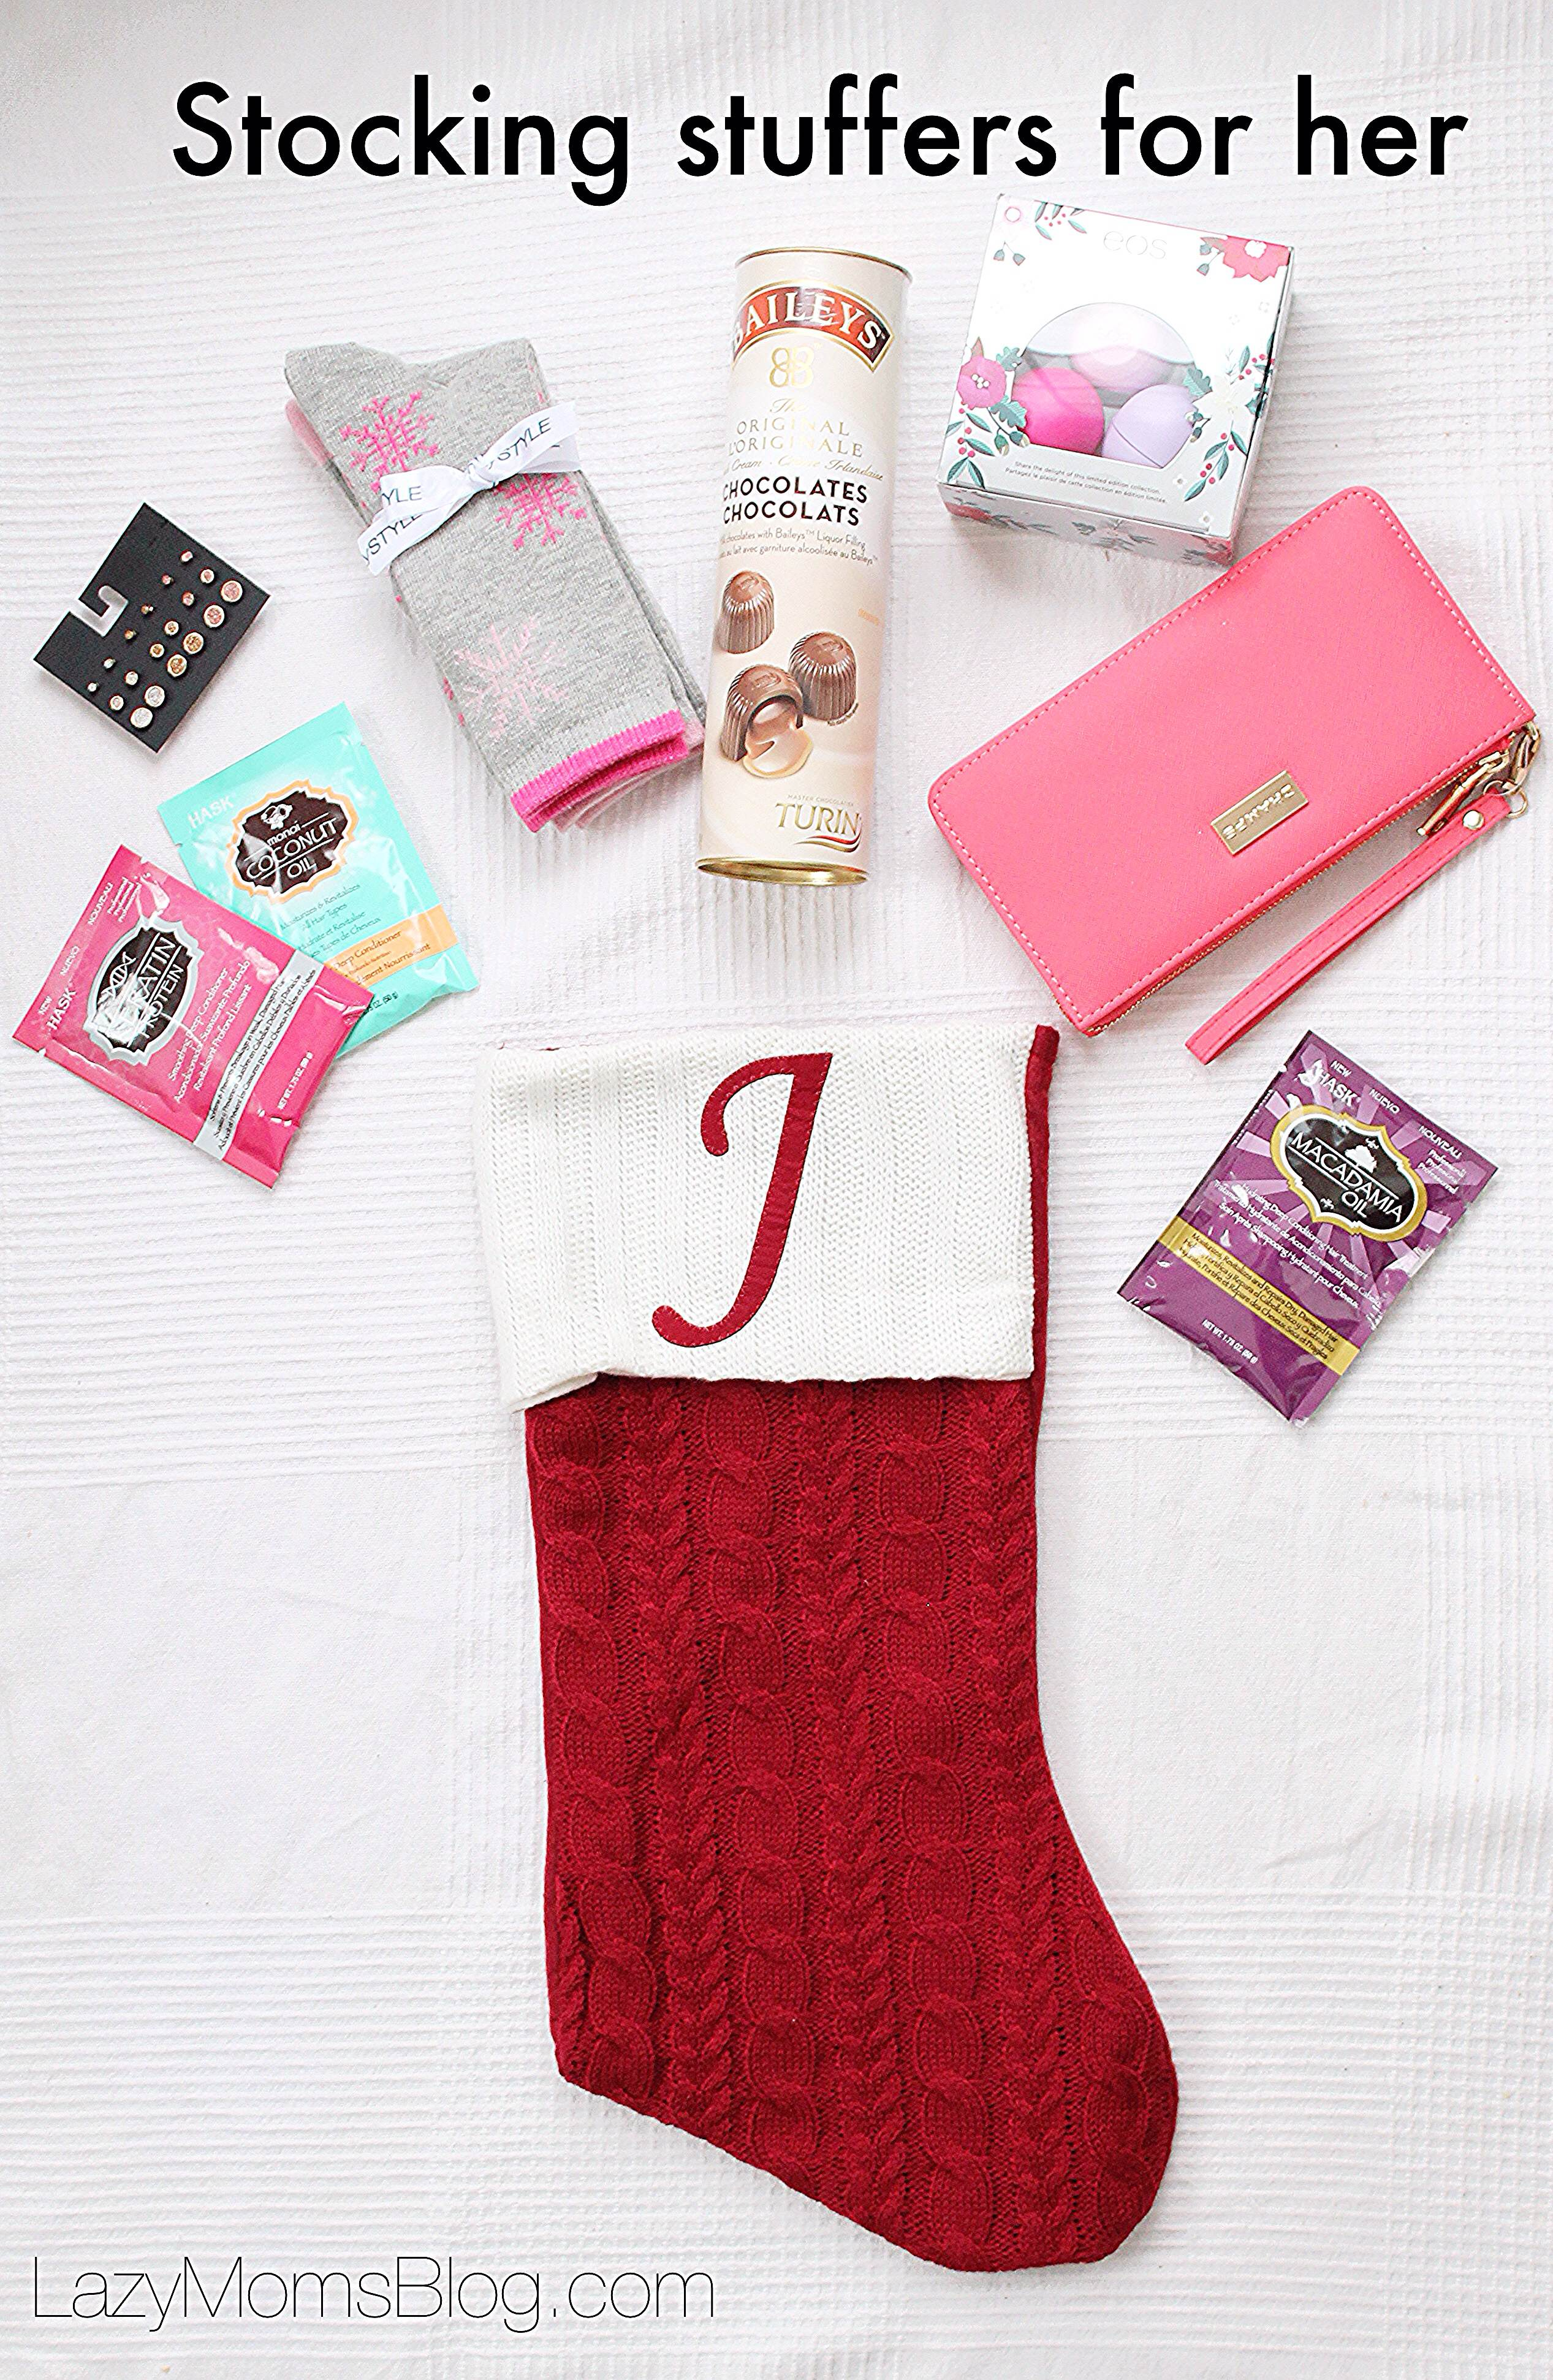 stocking stuffers for entire family , great finds for stocking stuffers for 25$ or less!